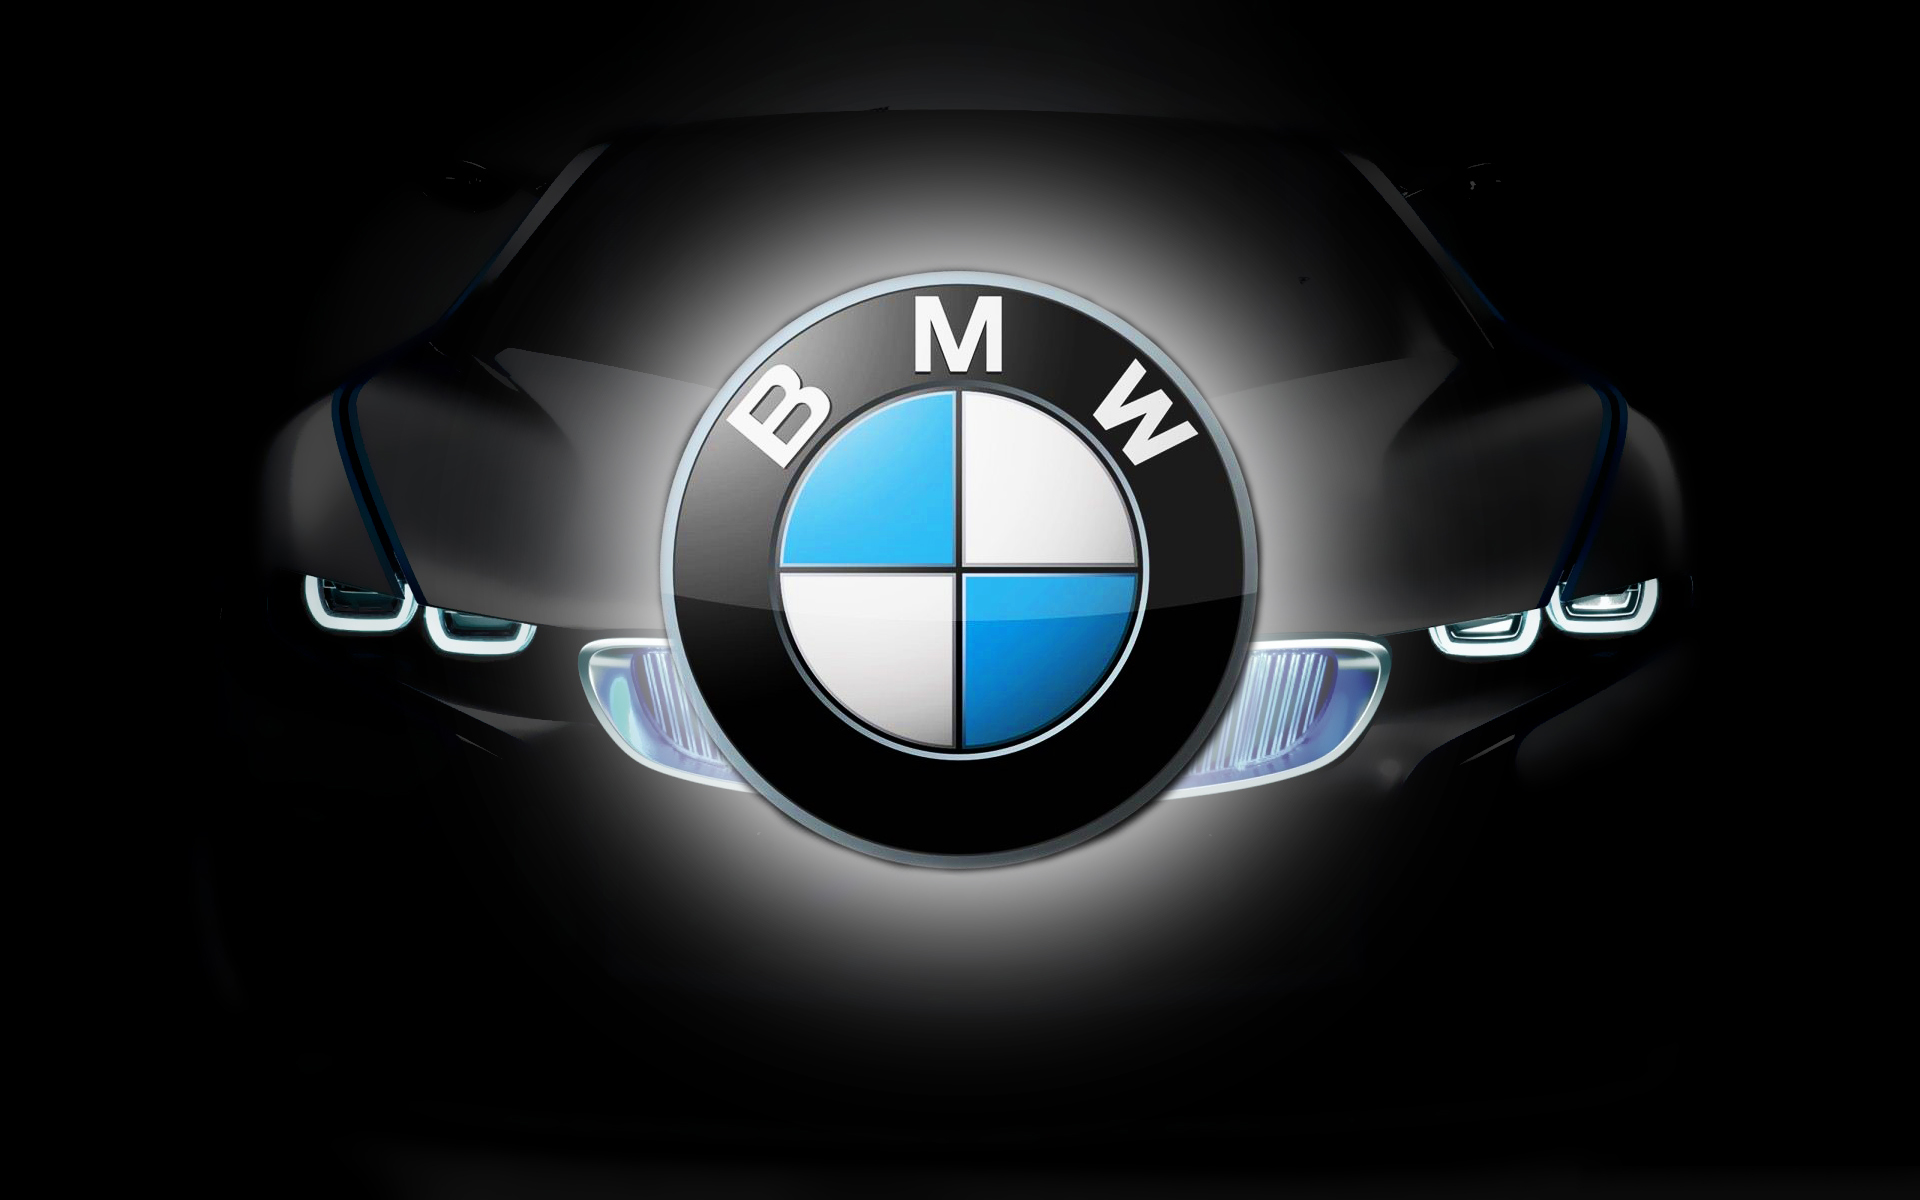 Bmw Logo Vector At Getdrawings Com Free For Personal Use Bmw Logo